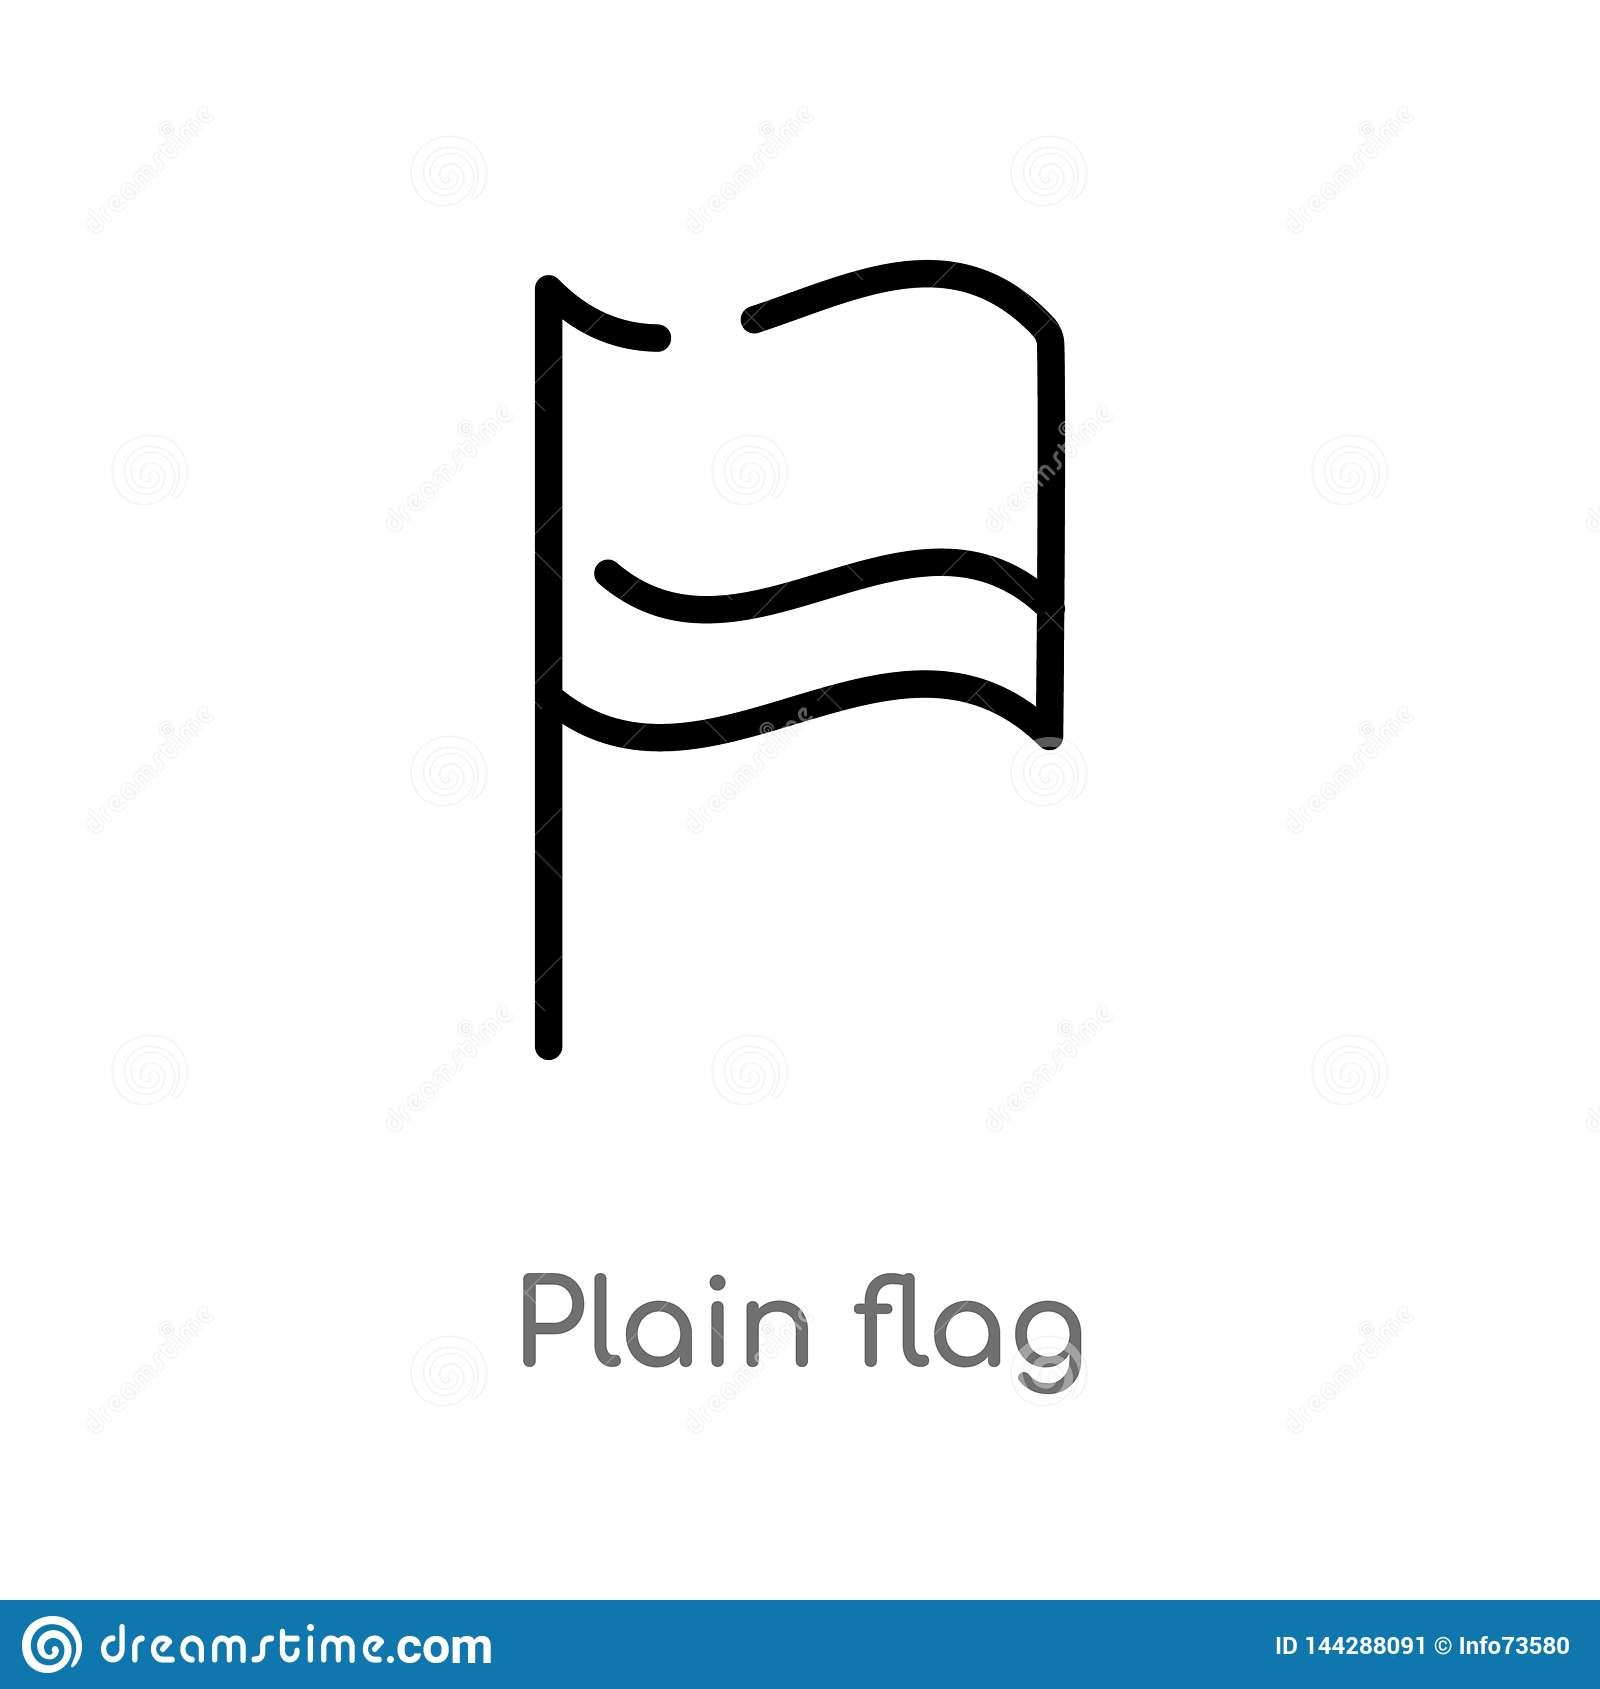 outline plain flag vector icon. isolated black simple line element illustration from maps and flags concept. editable vector